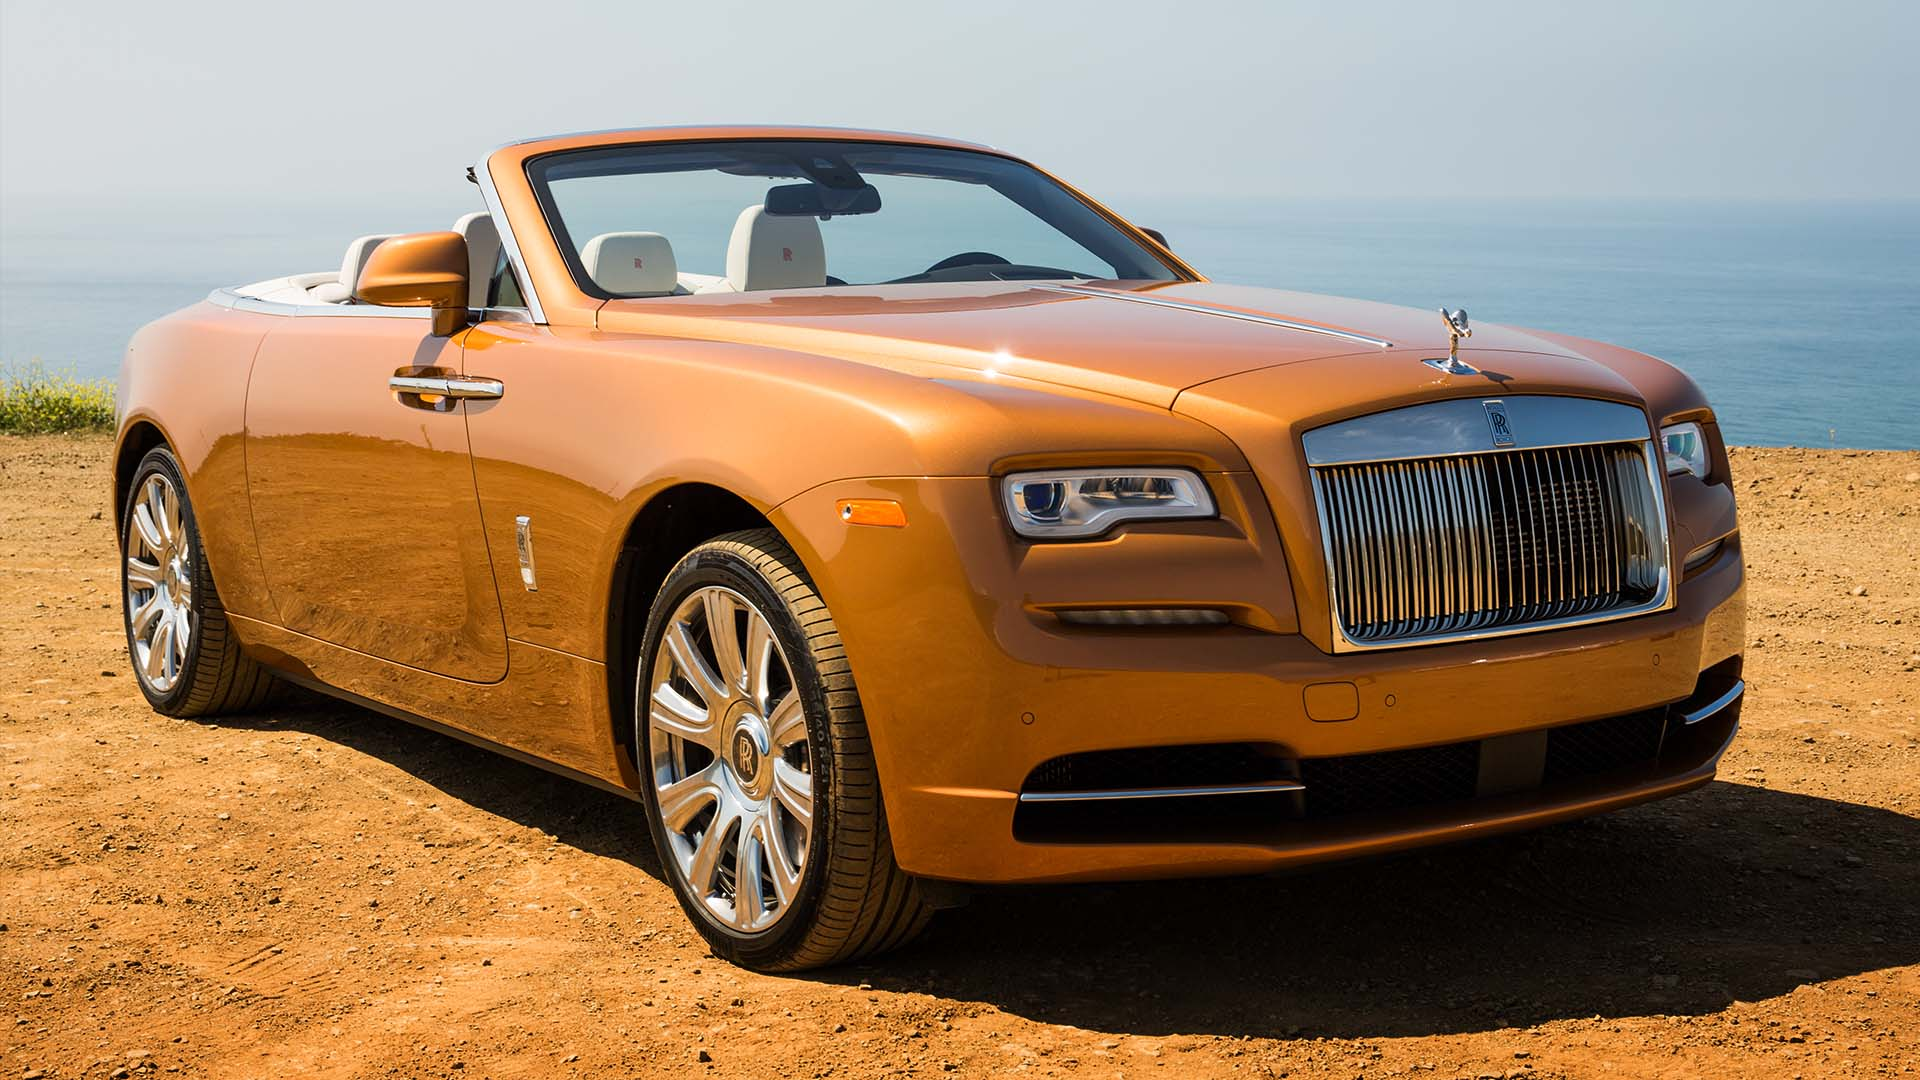 Video: Rolls-Royce brings us the new drophead Dawn